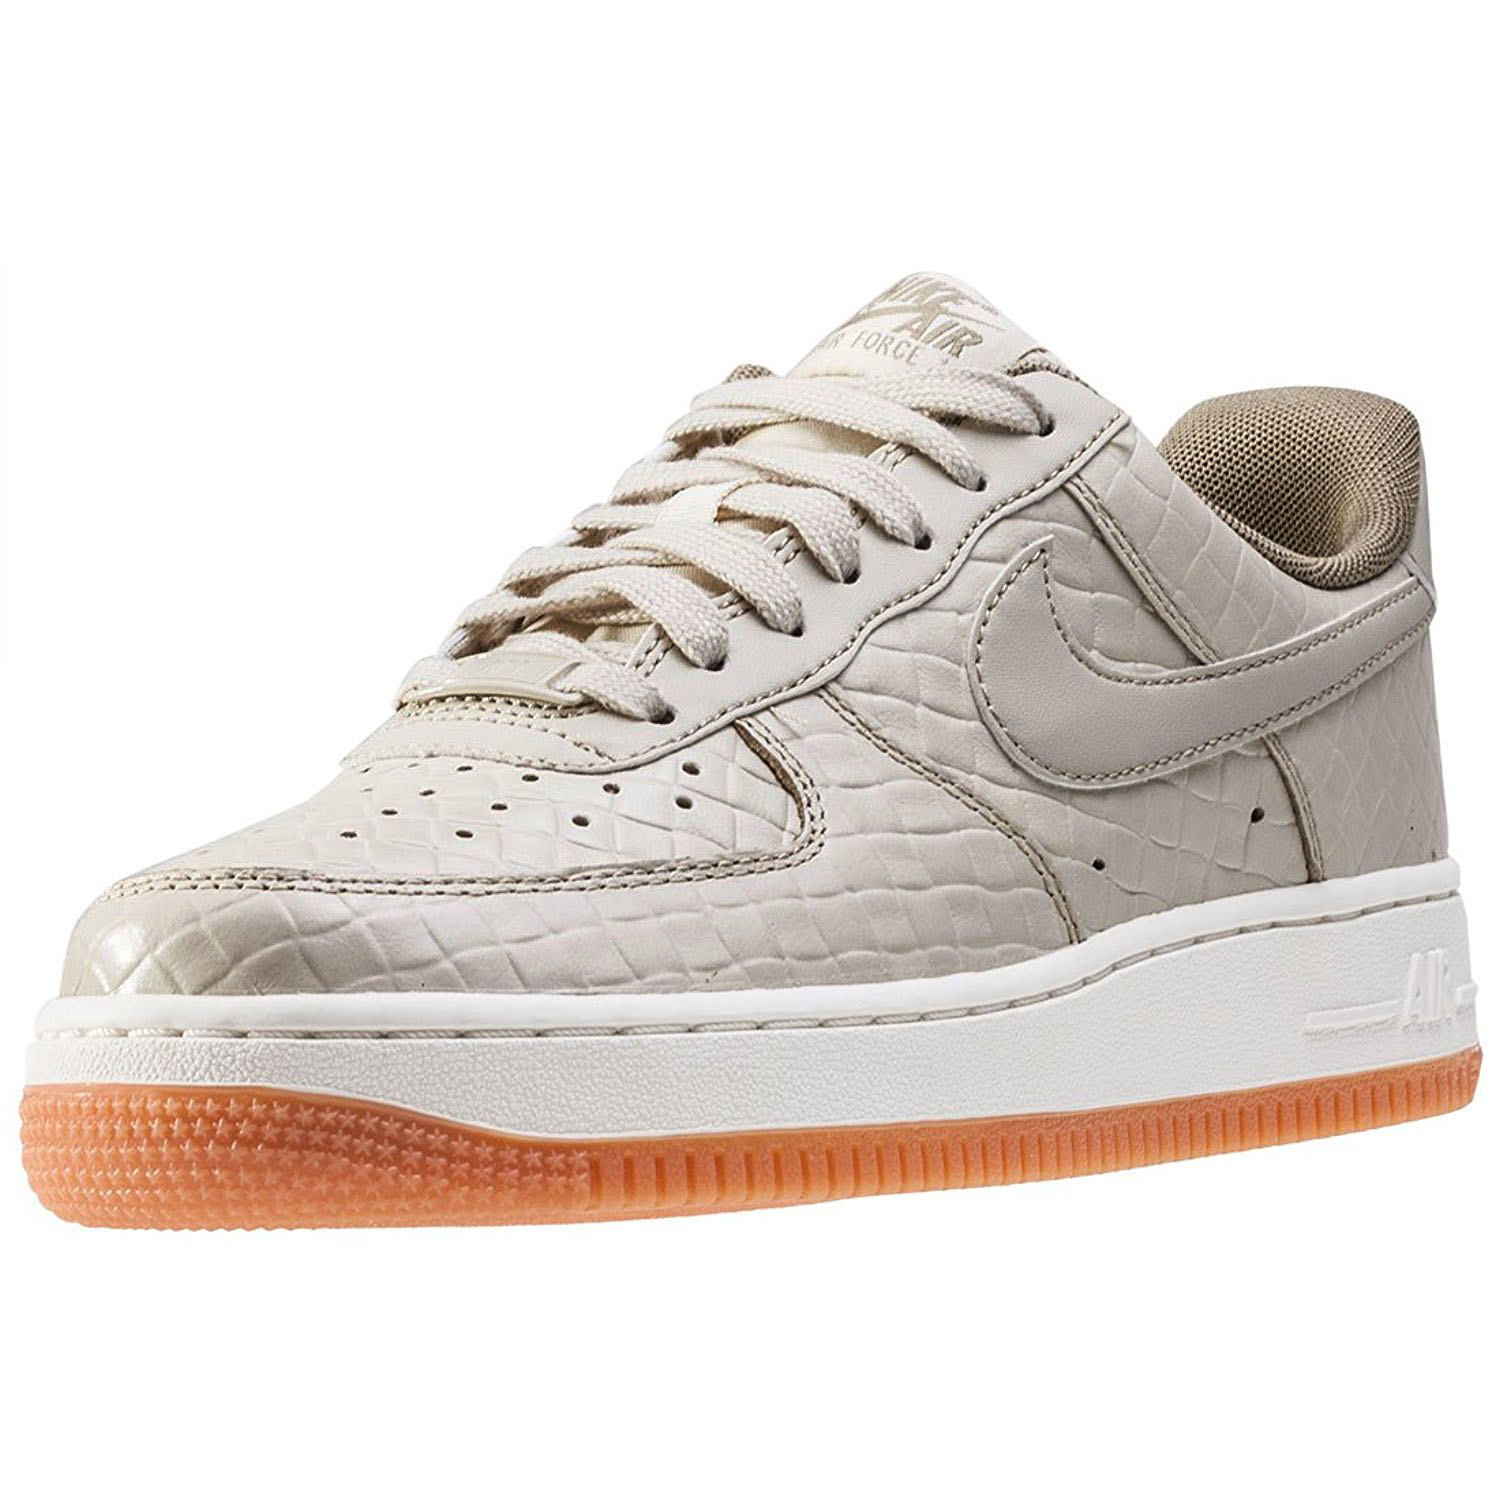 Nike Women's Air Force 1 '07 PRM Sneakers Shoes-Oatmeal/O...